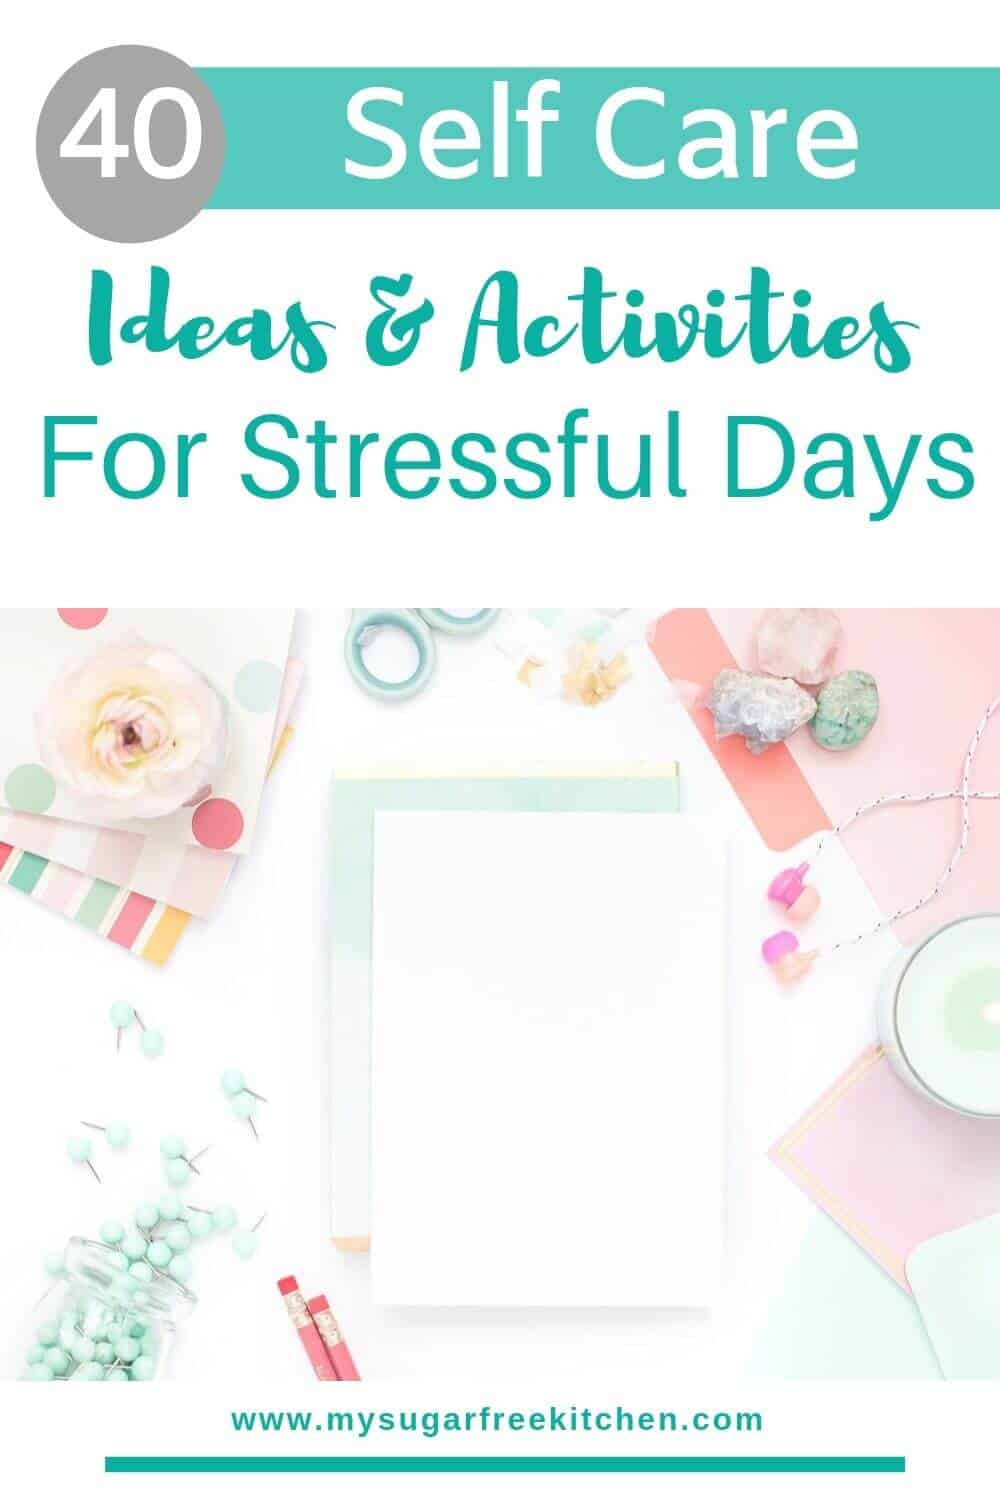 40 self care ideas and activities for stressful days